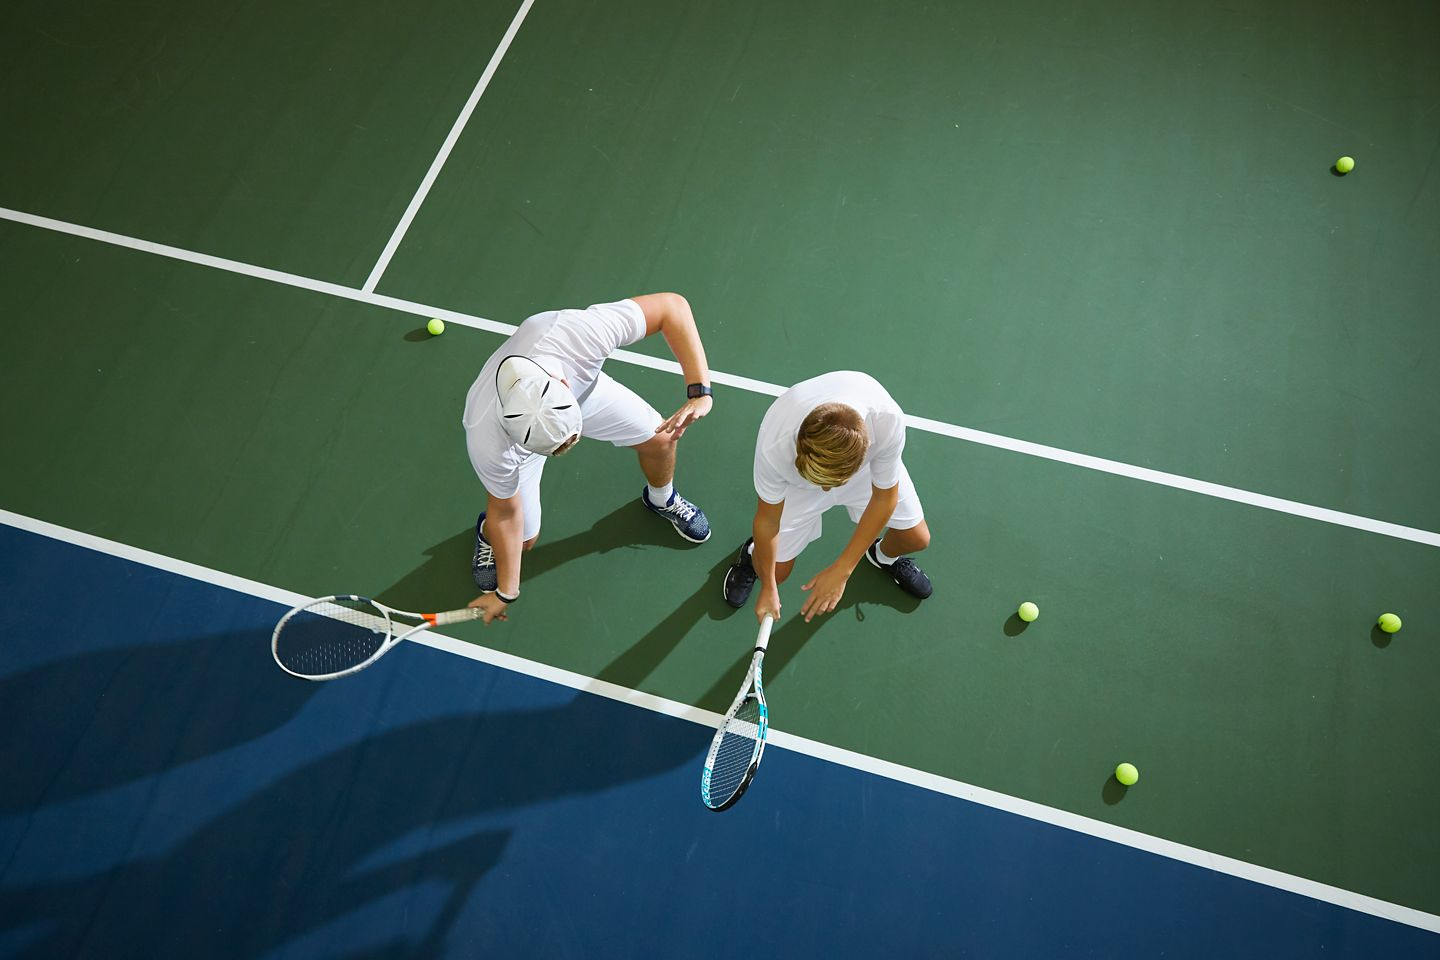 Overhead image of a tennis lesson